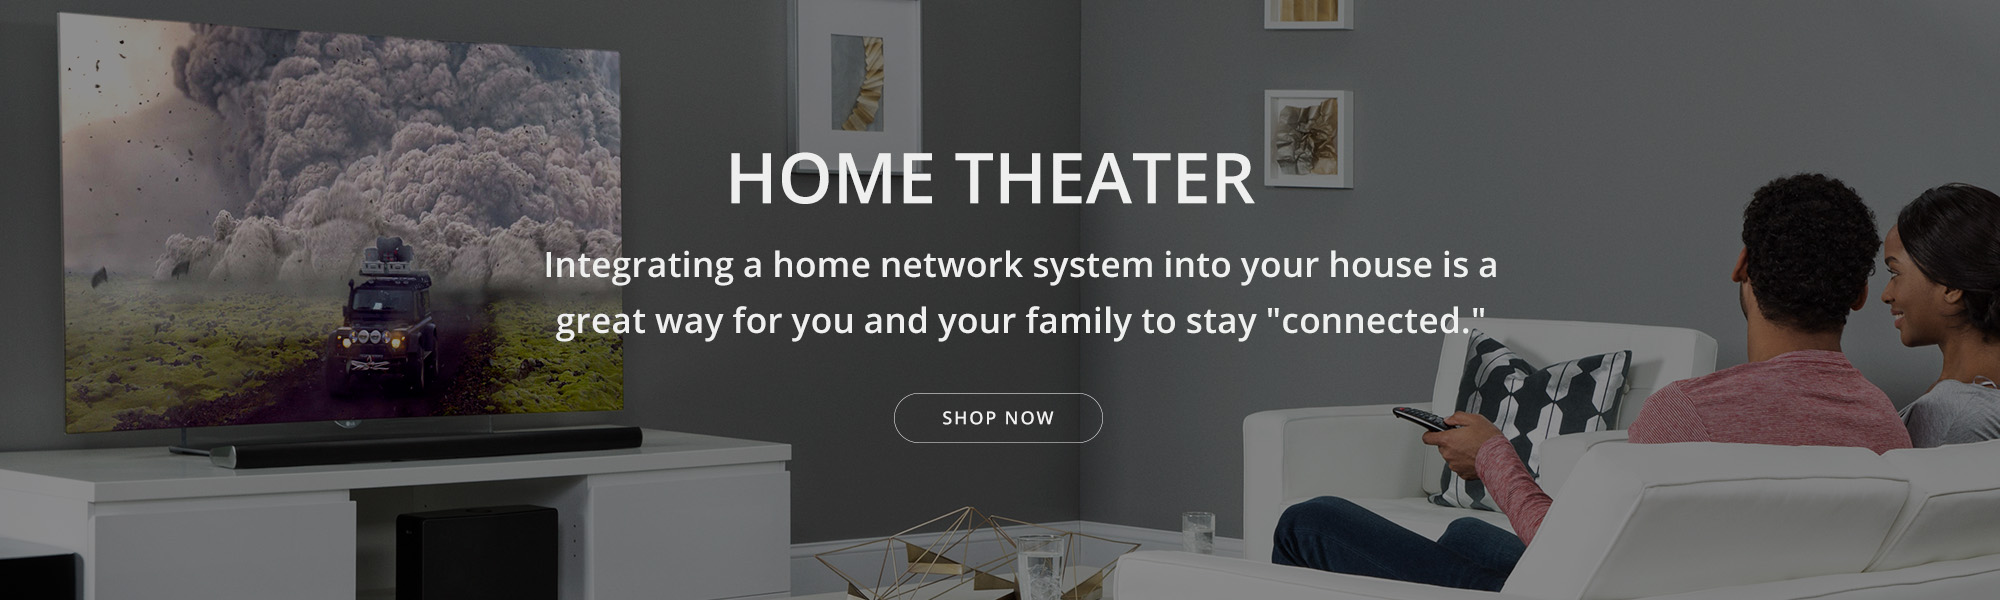 Home Theater banner